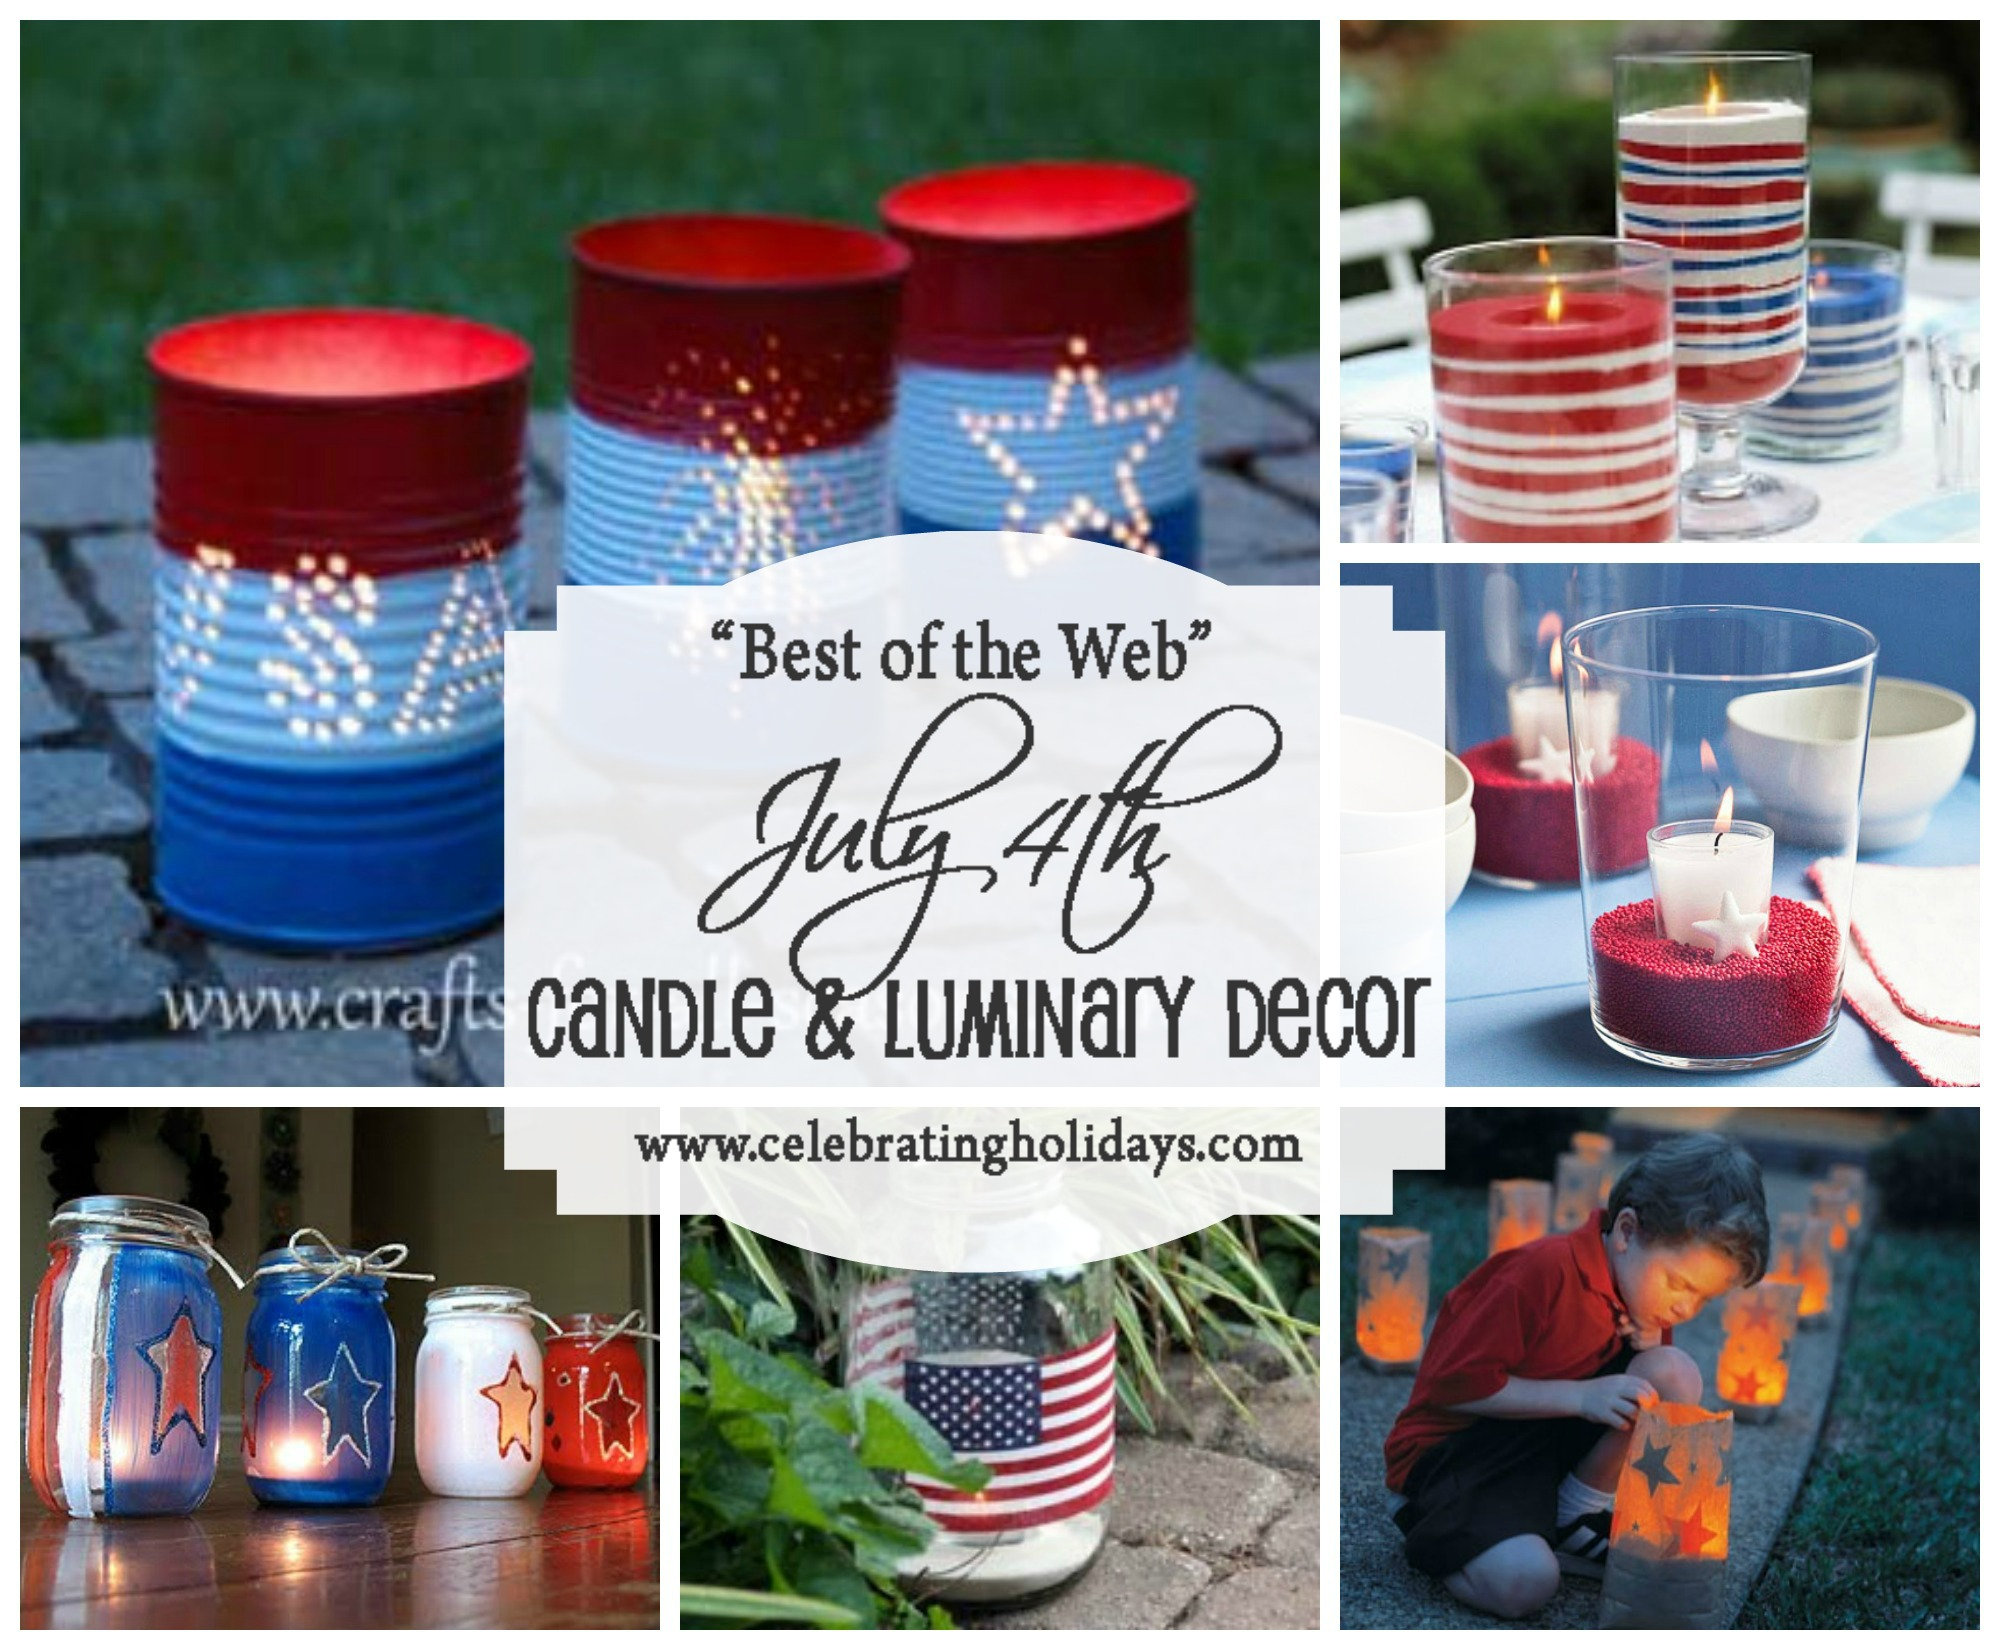 Candle and Luminary DIY Decorating for July 4th